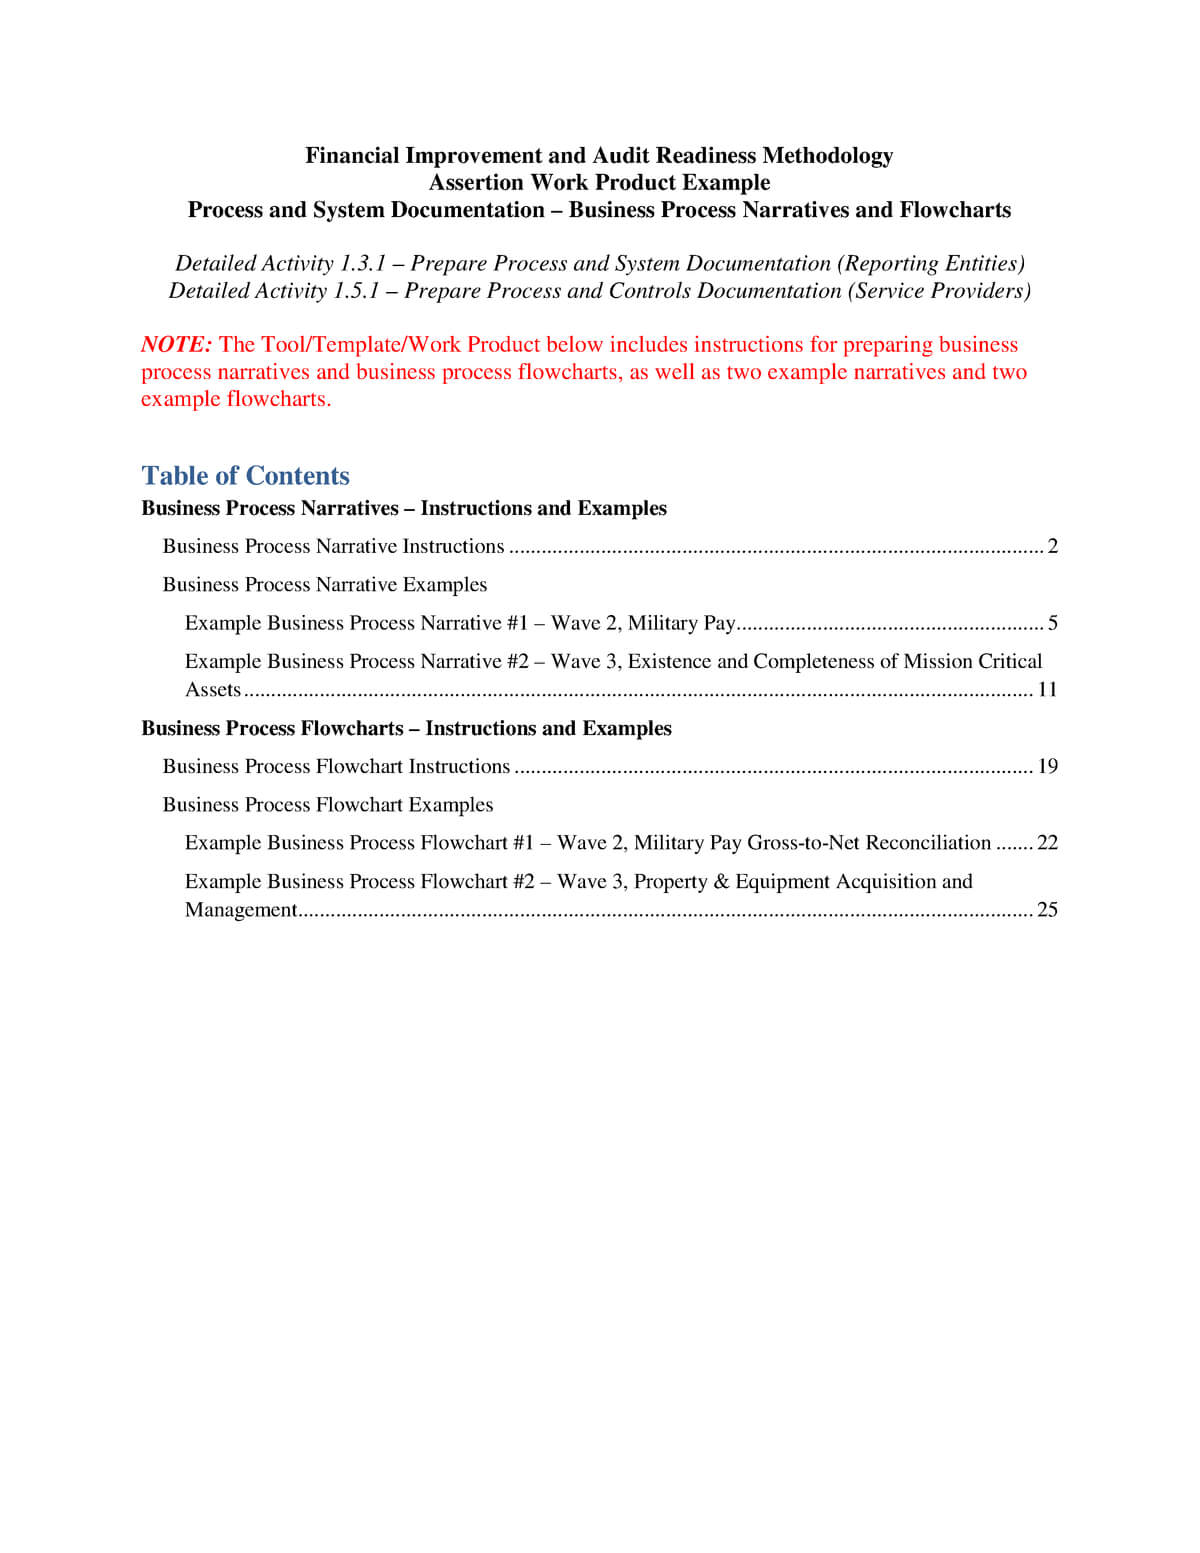 50 Business Process Narrative And Flowchart Instructions And Pertaining To Business Process Narrative Template